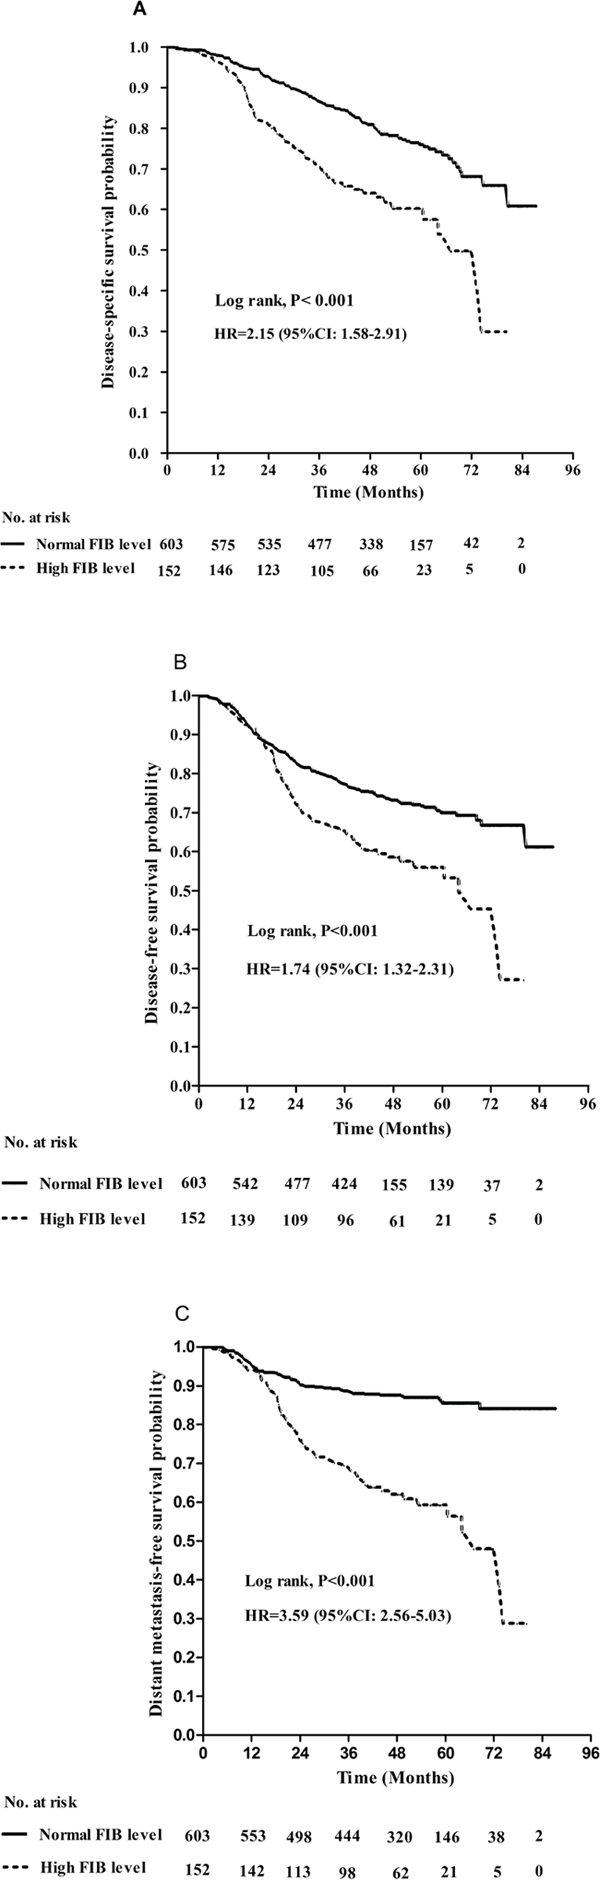 Kaplan–Meier A. disease-specific survival, B. disease-free survival and C. distant metastasis-free survival curves for patients with stage IVA/B NPC stratified by pretreatment plasma FIB (> 4 g/L vs. ≤ 4 g/L).